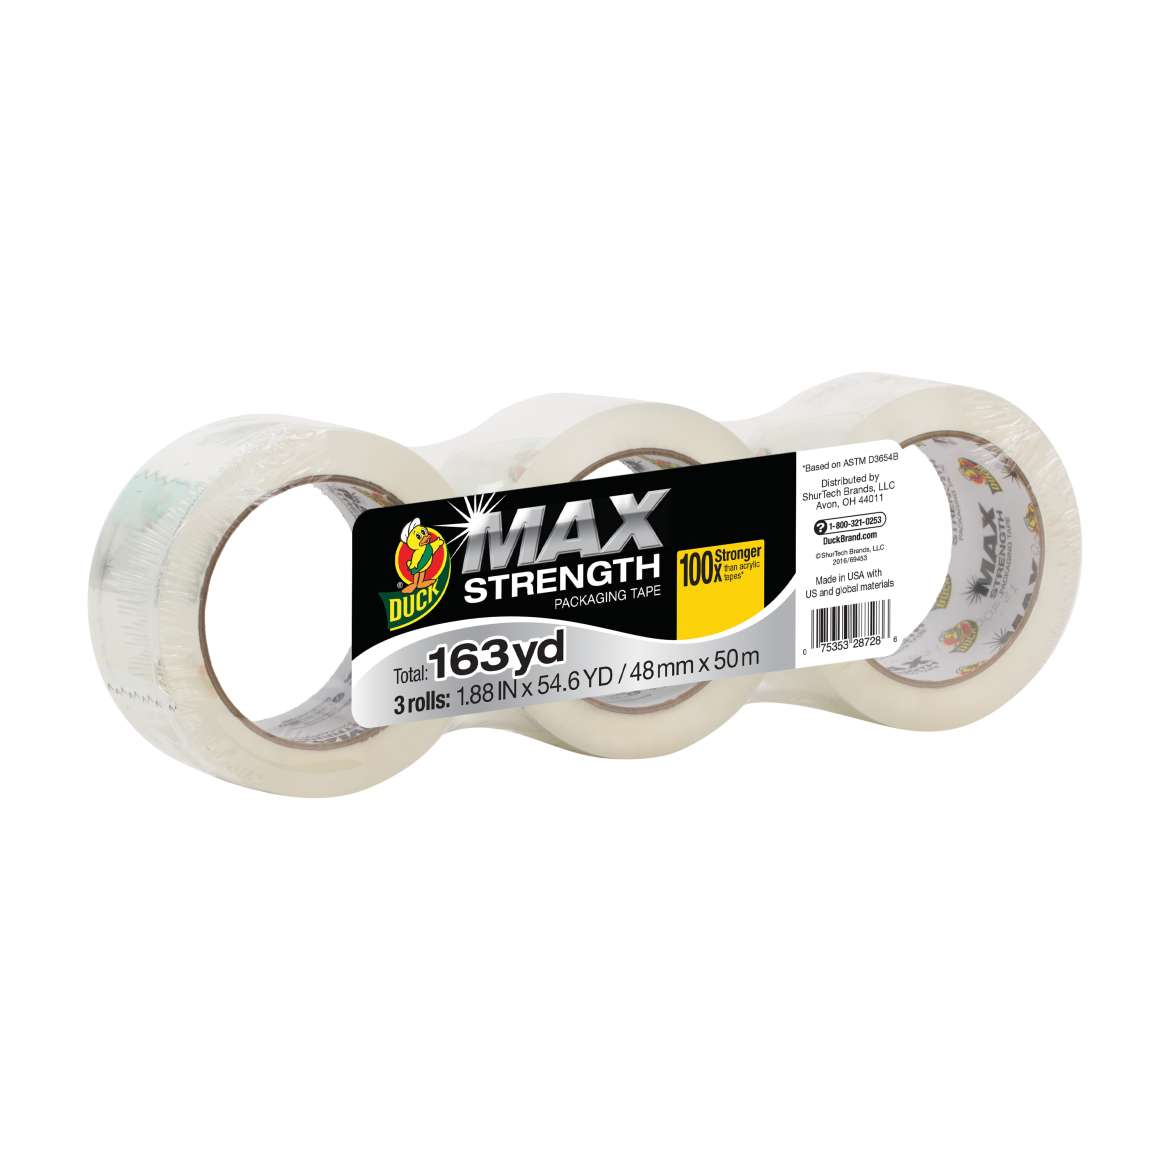 Duck® MAX Strength Packing Tape - Clear, 3 pk, 1.88 in. x 54.6 yd. Image